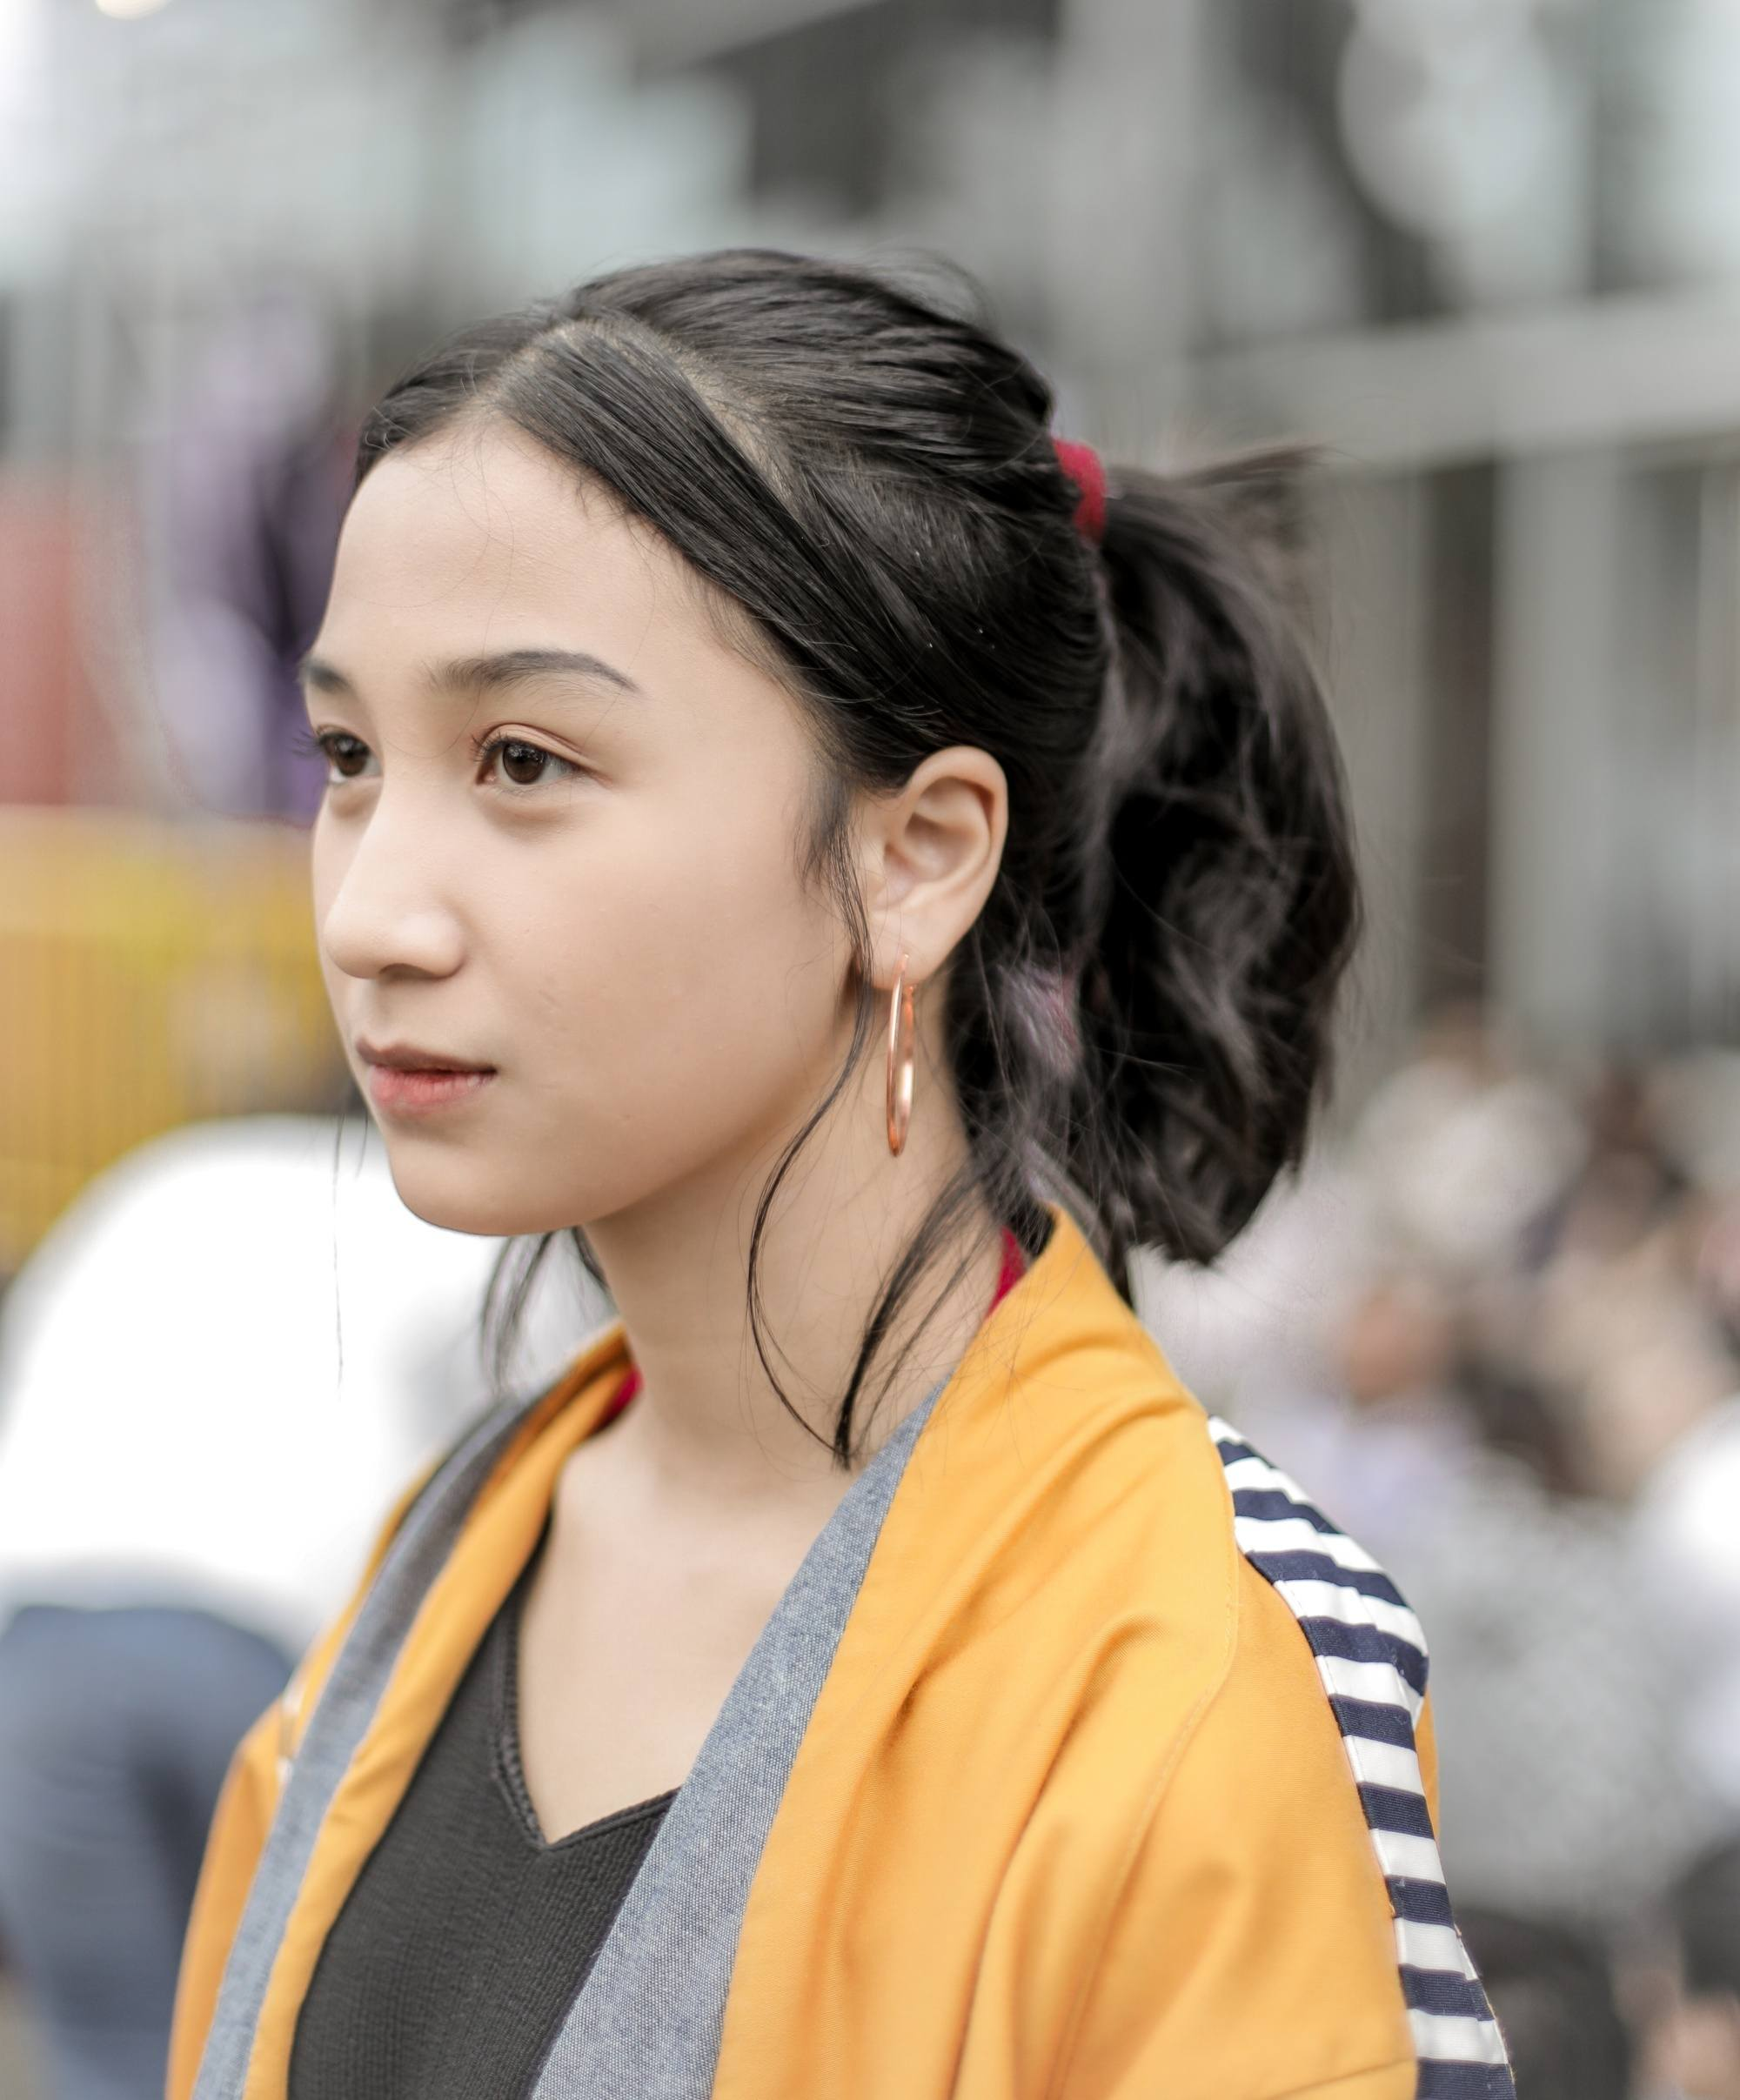 Summer updos: Closeup shot of an Asian woman with black wavy hair in a ponytail